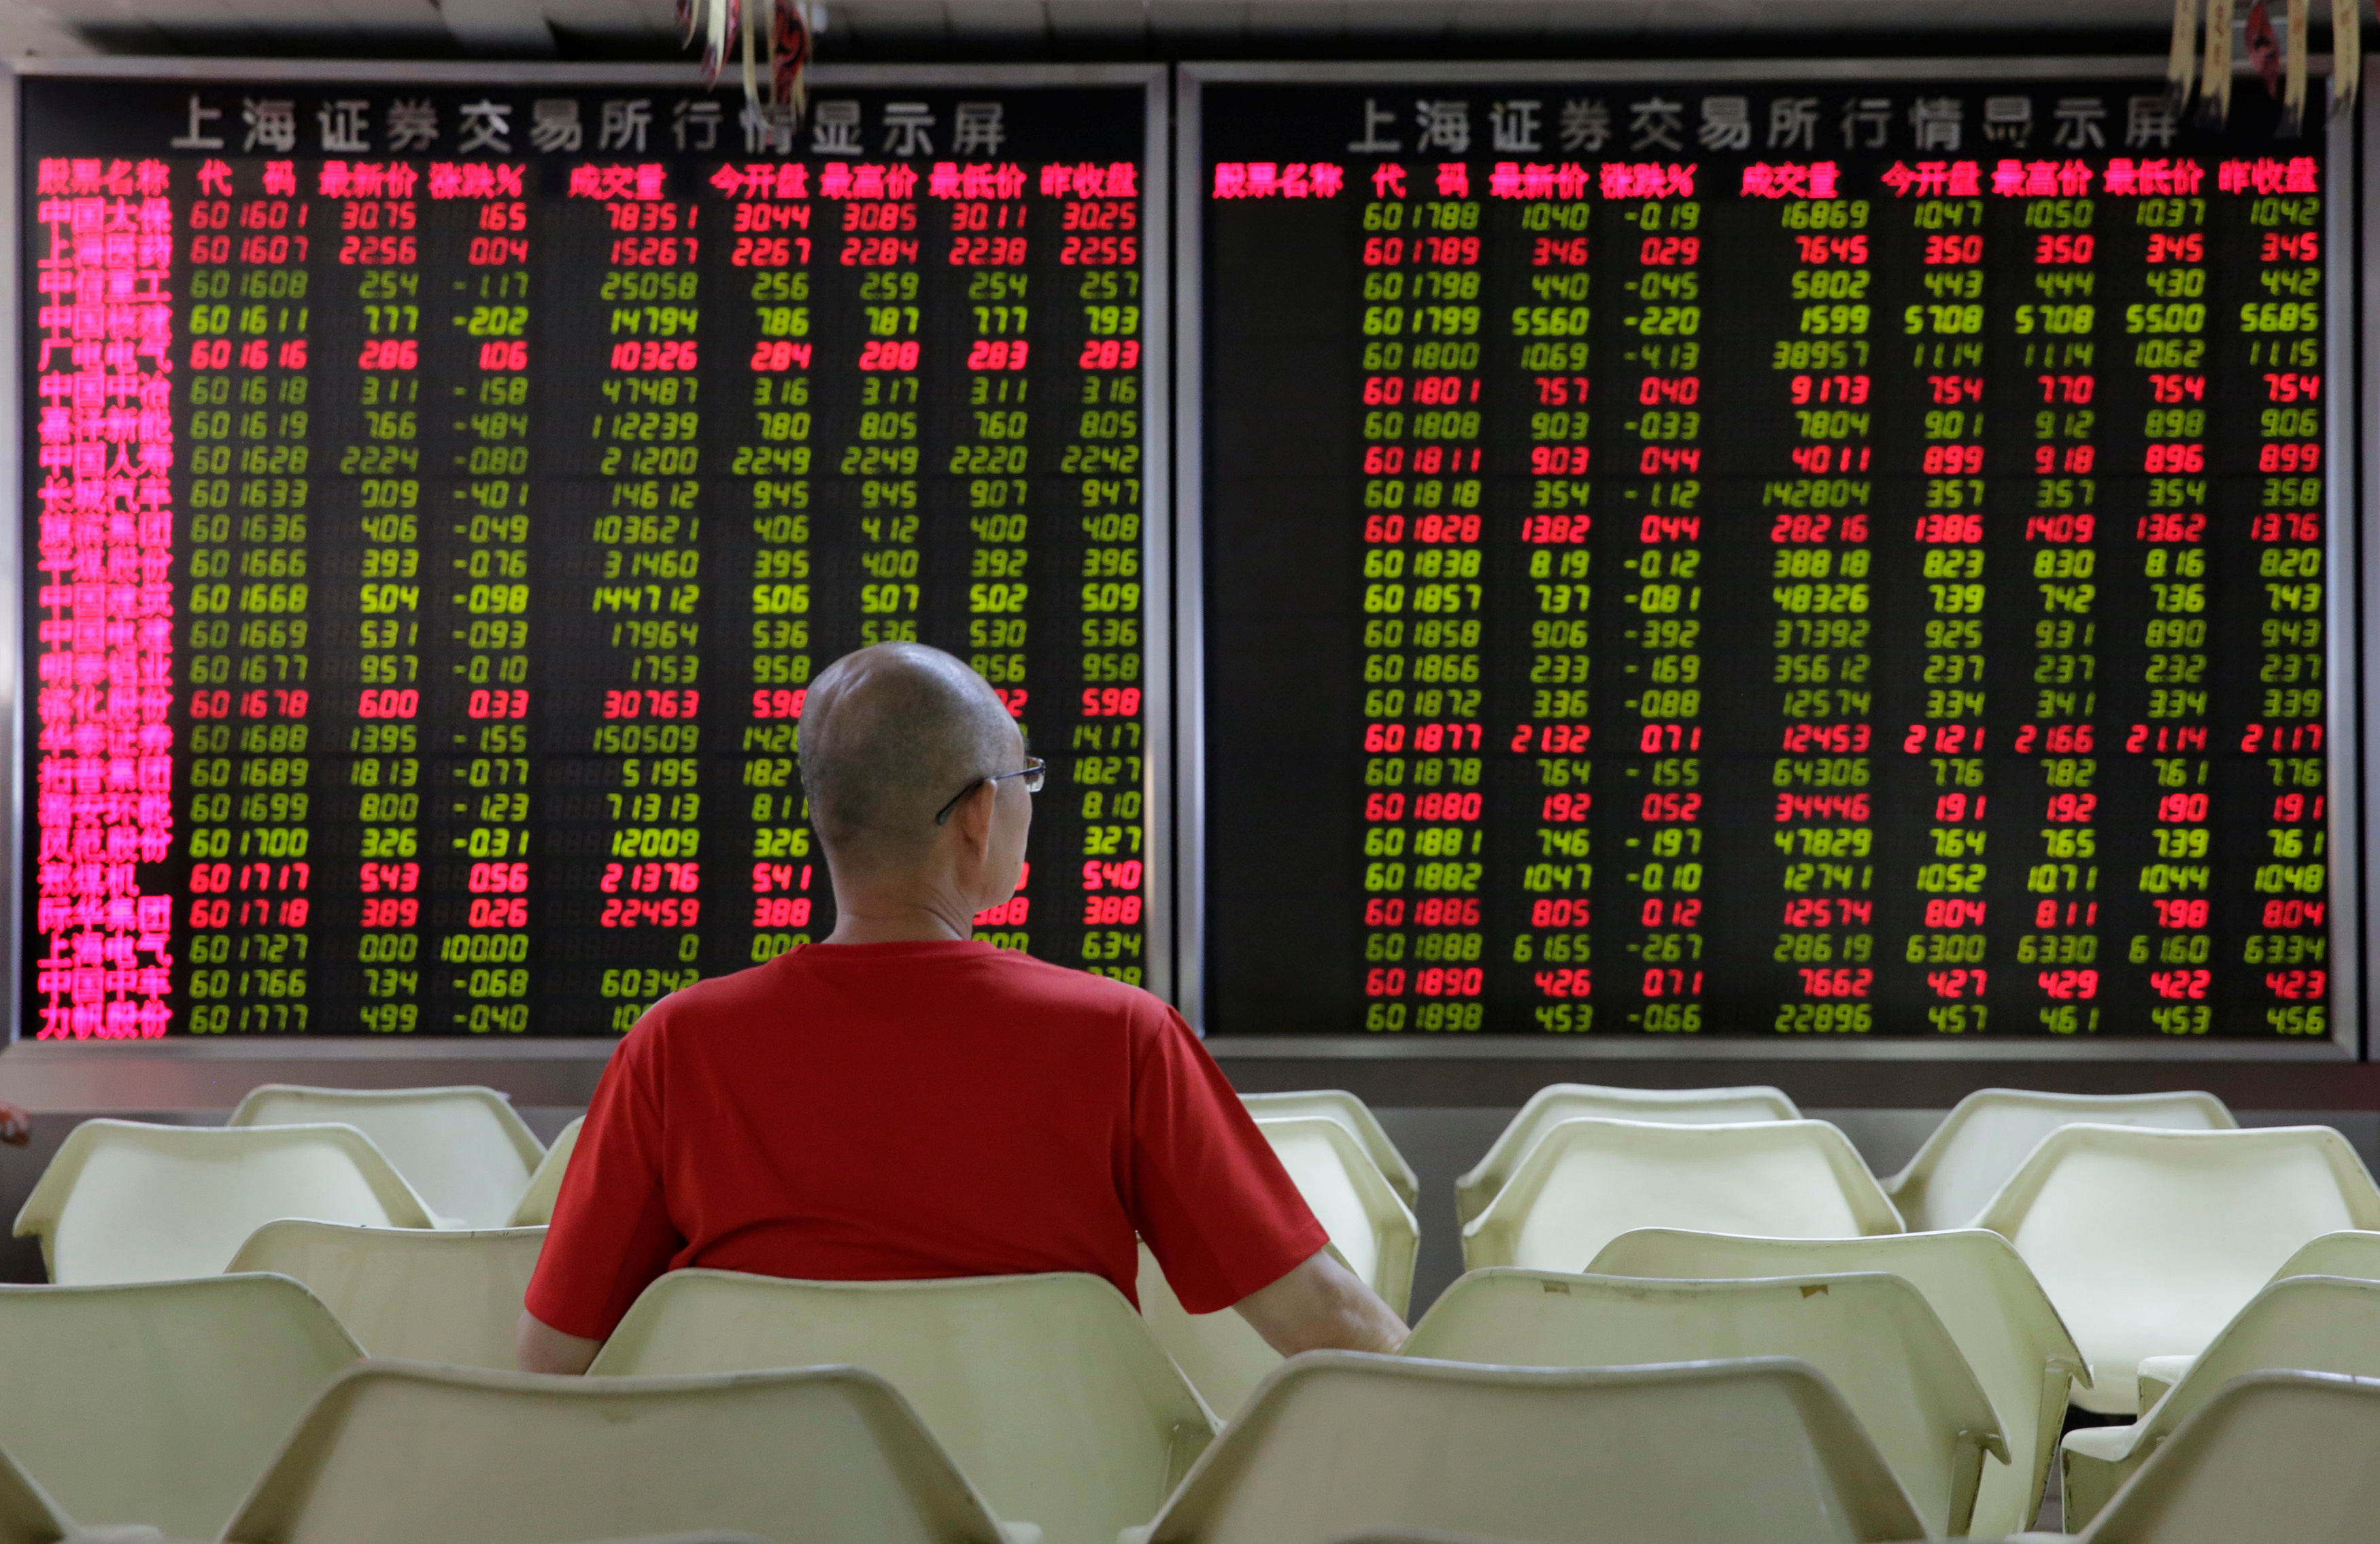 An investor watches stock prices at a brokerage office in Beijing, China July 6, 2018. REUTERS/Jason Lee/Files